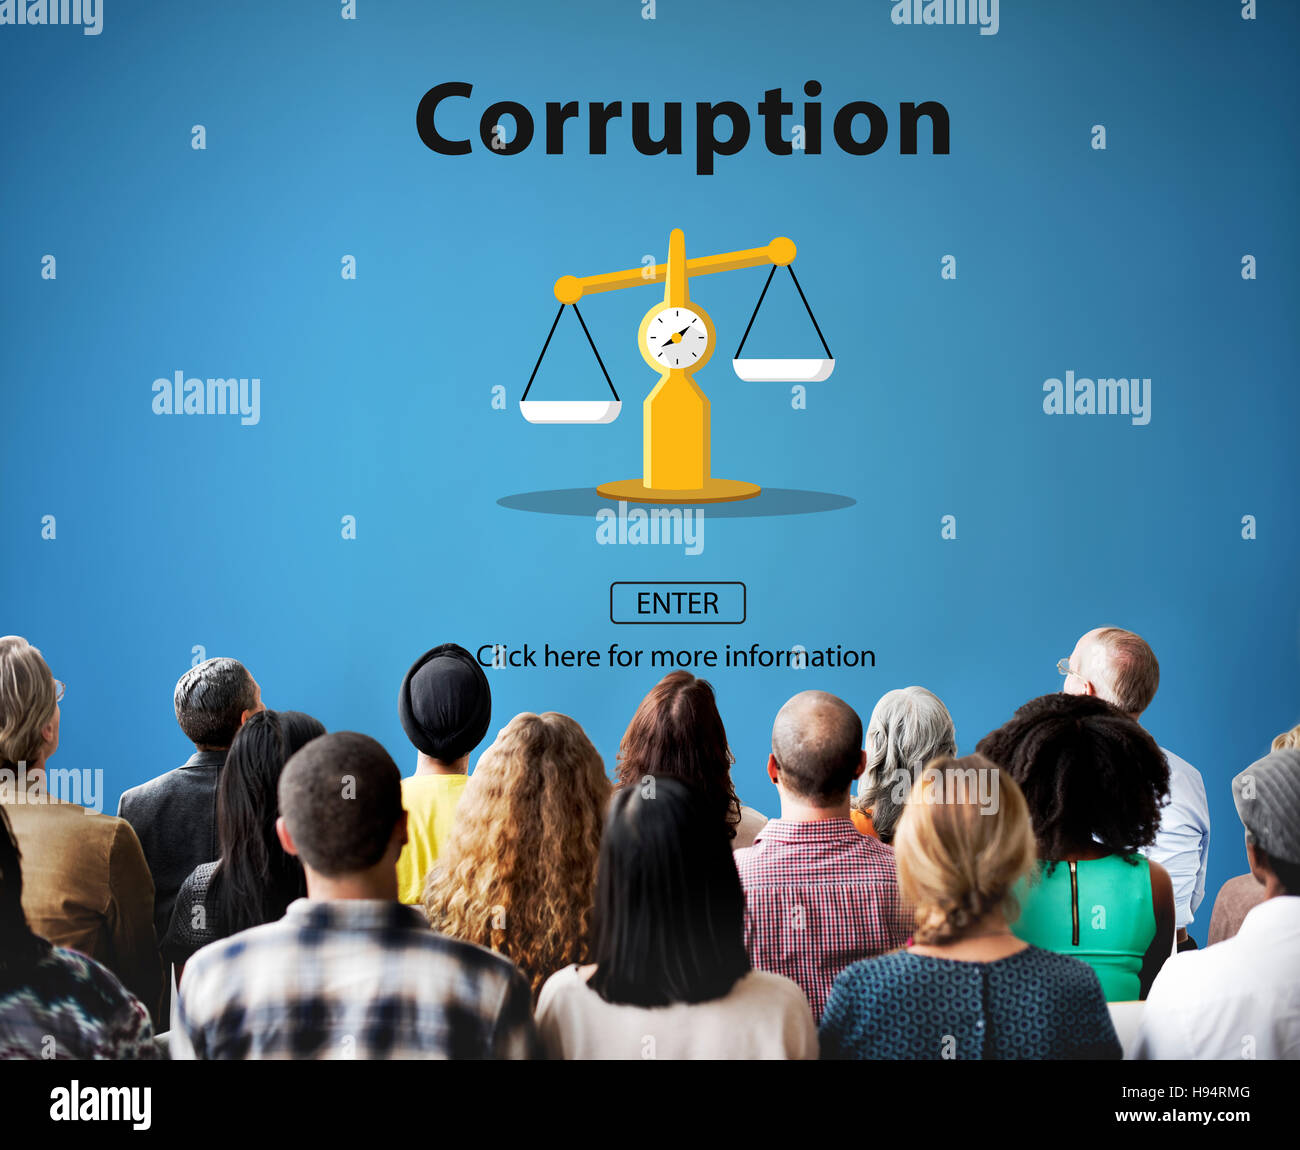 Corruption Bribe Cheat Illegal Money Finance Concept - Stock Image